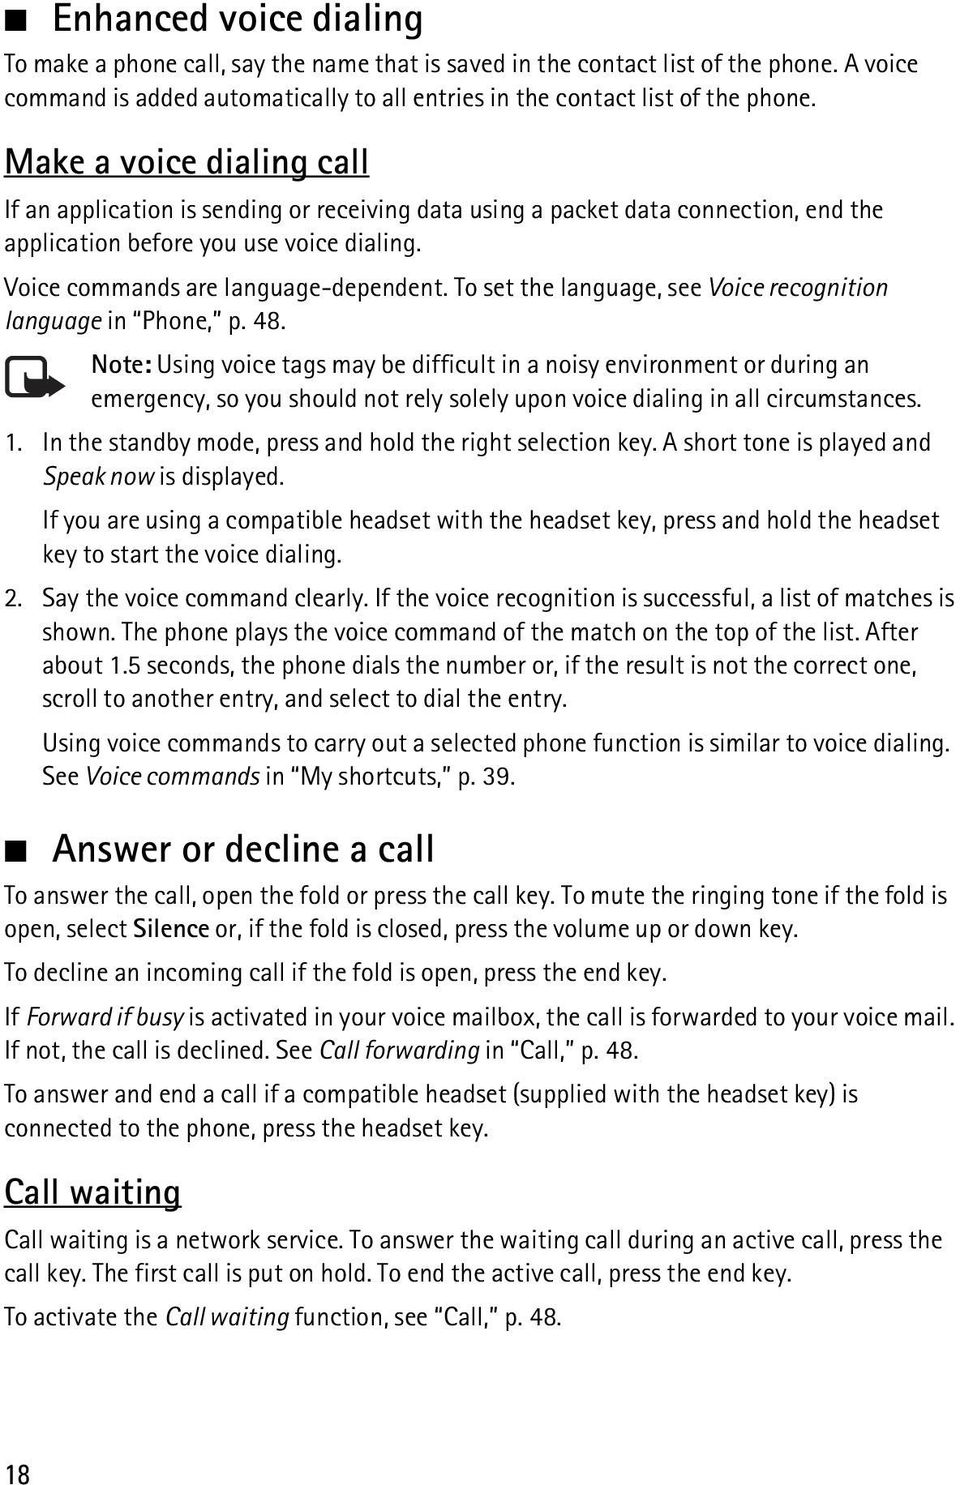 To set the language, see Voice recognition language in Phone, p. 48.